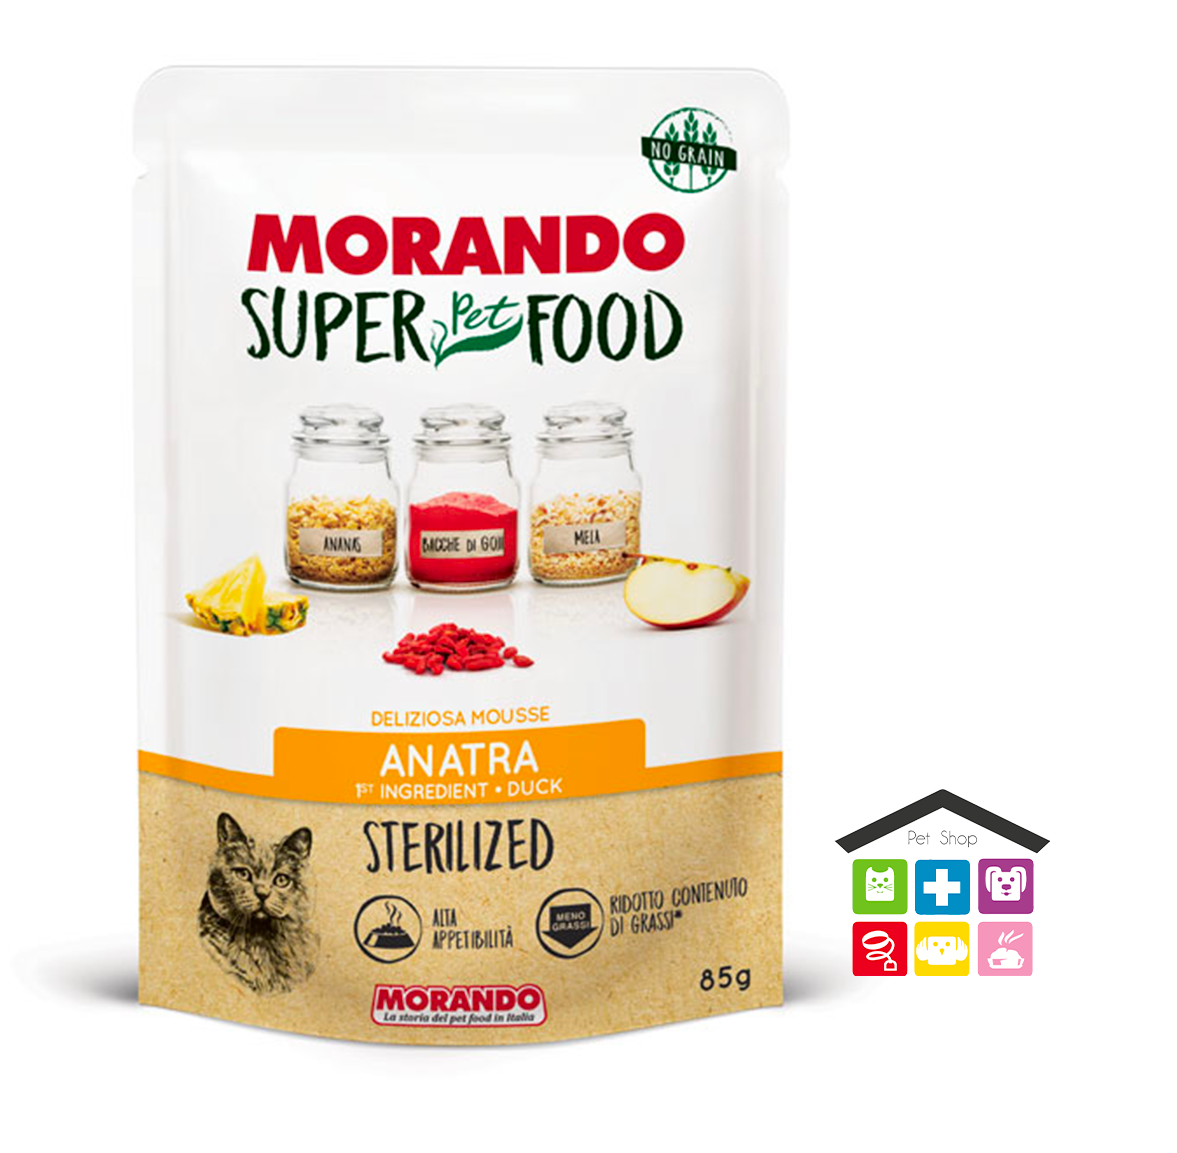 Morando SuperPetFood STERILIZED MOUSSE ANATRA 0,85g bustina